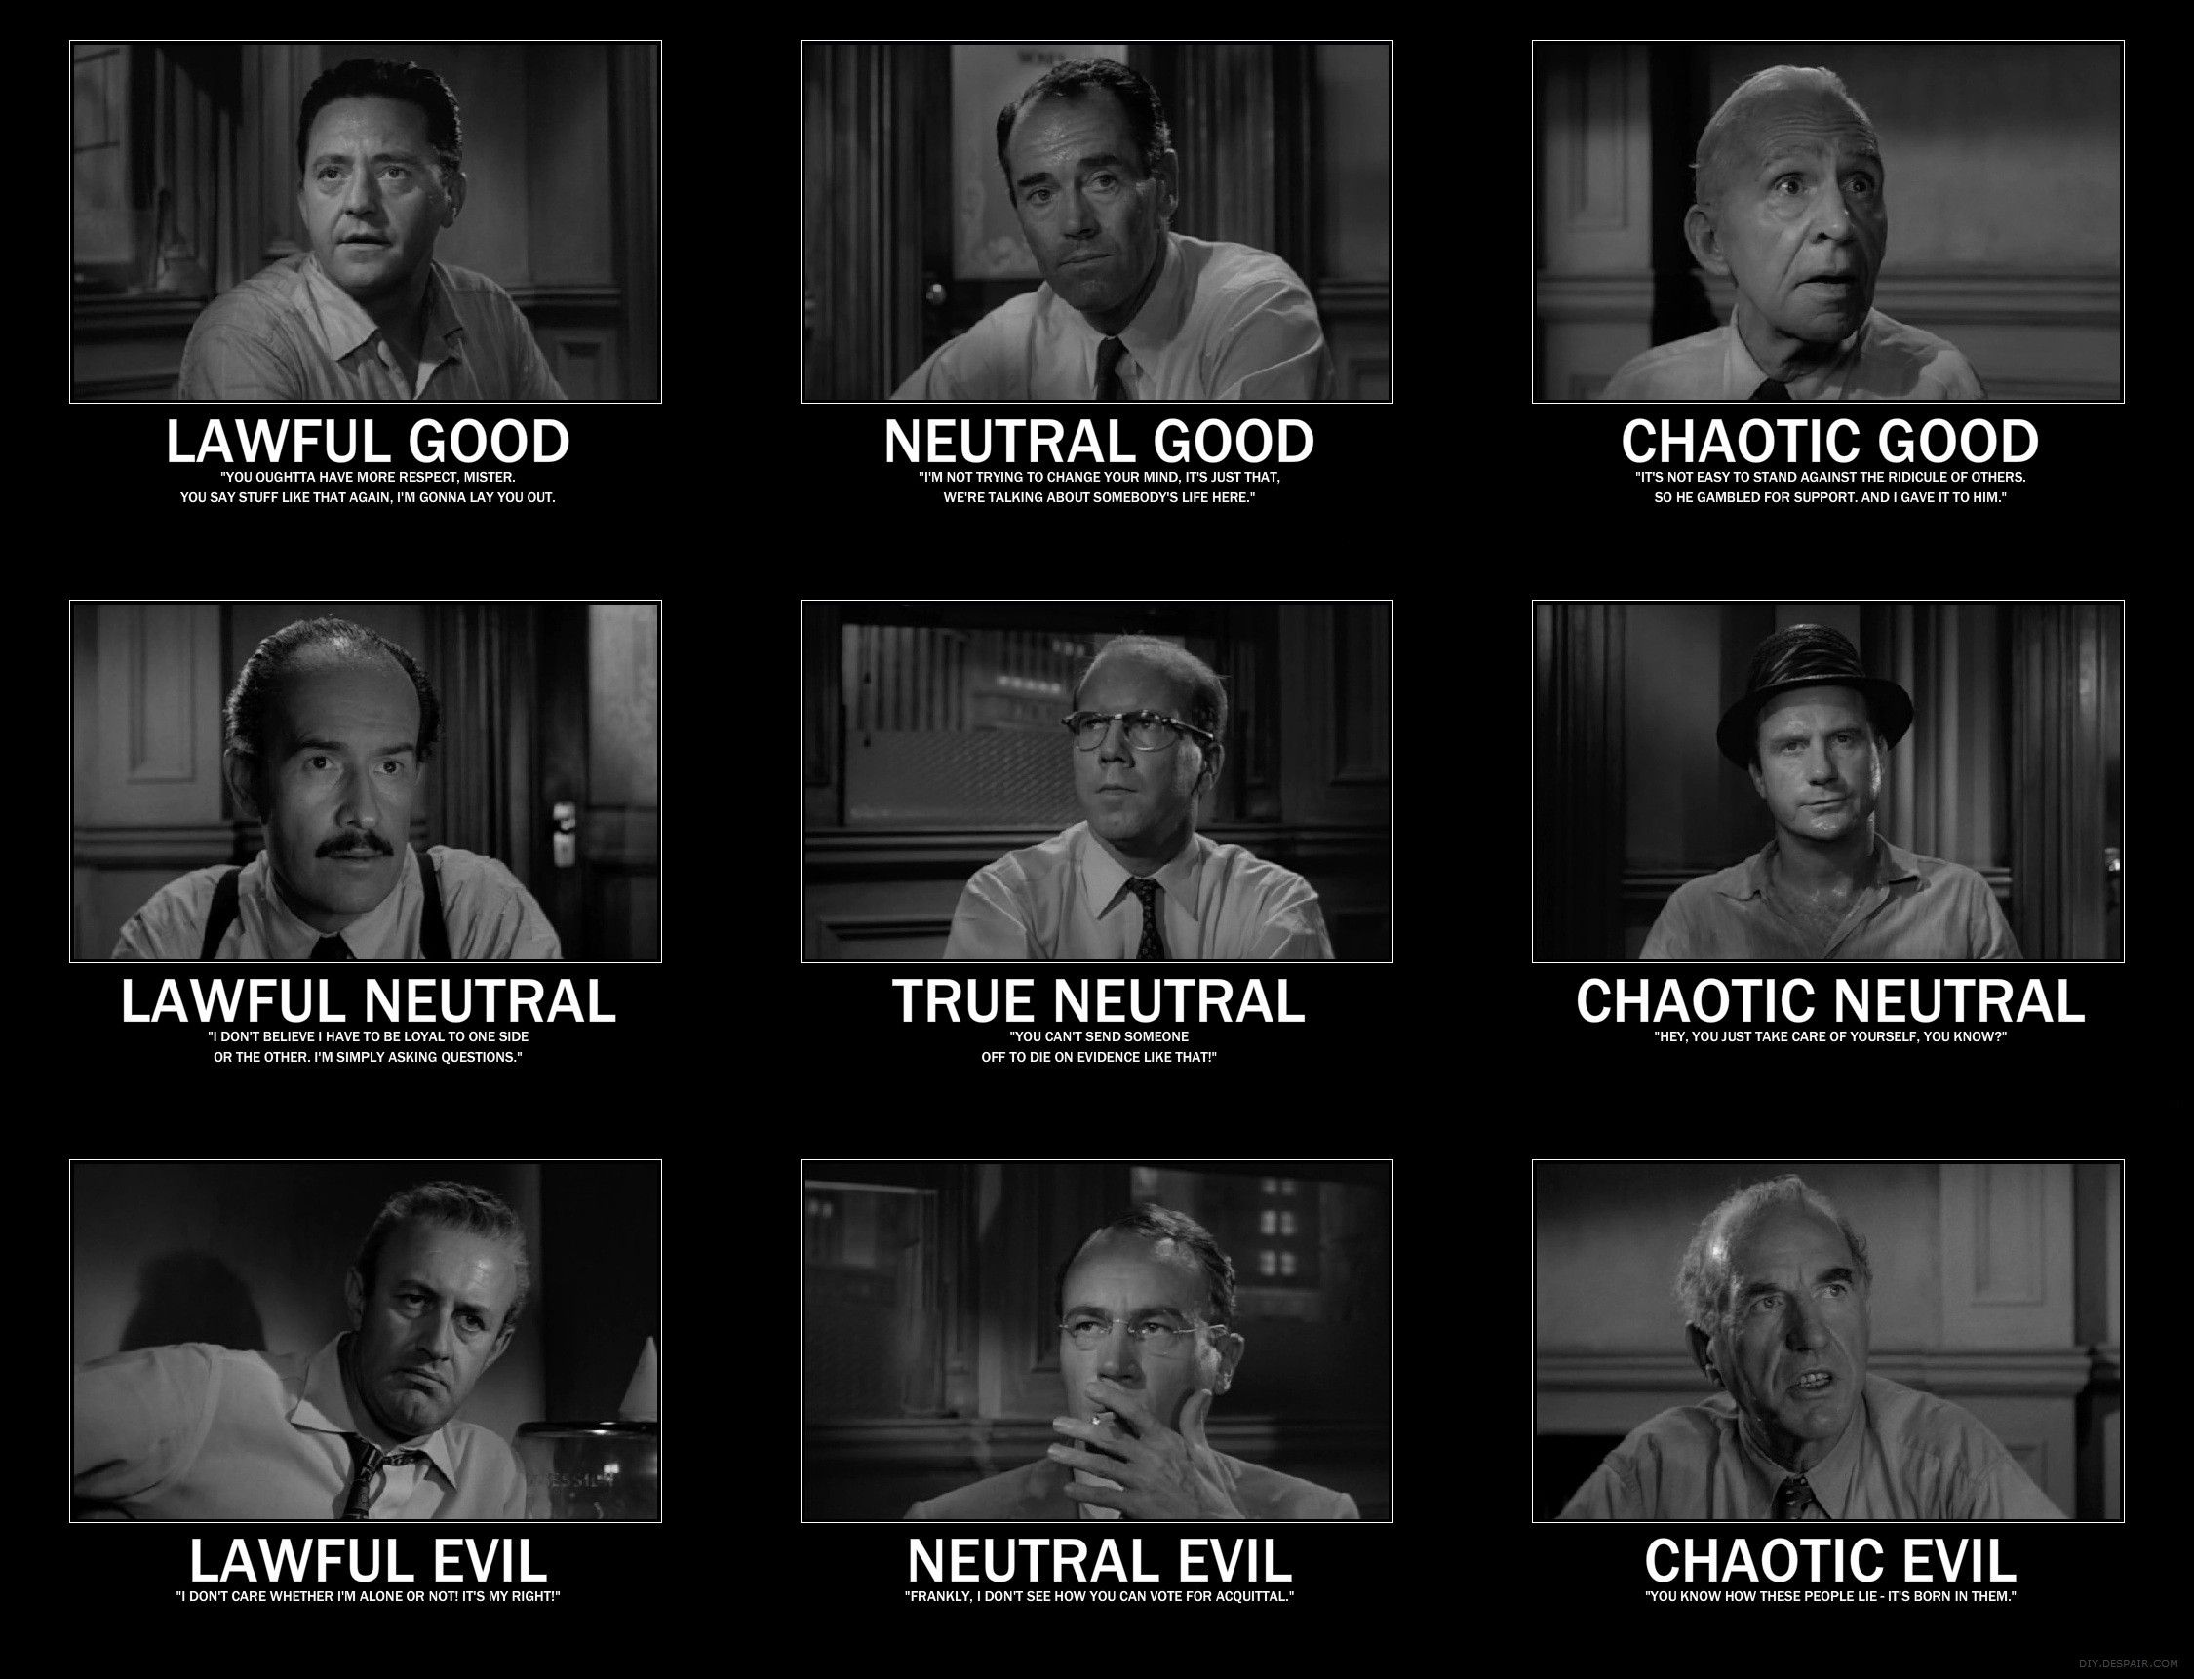 angry men a d d alignment chart movie films and cinema 12 angry men a d d alignment chart